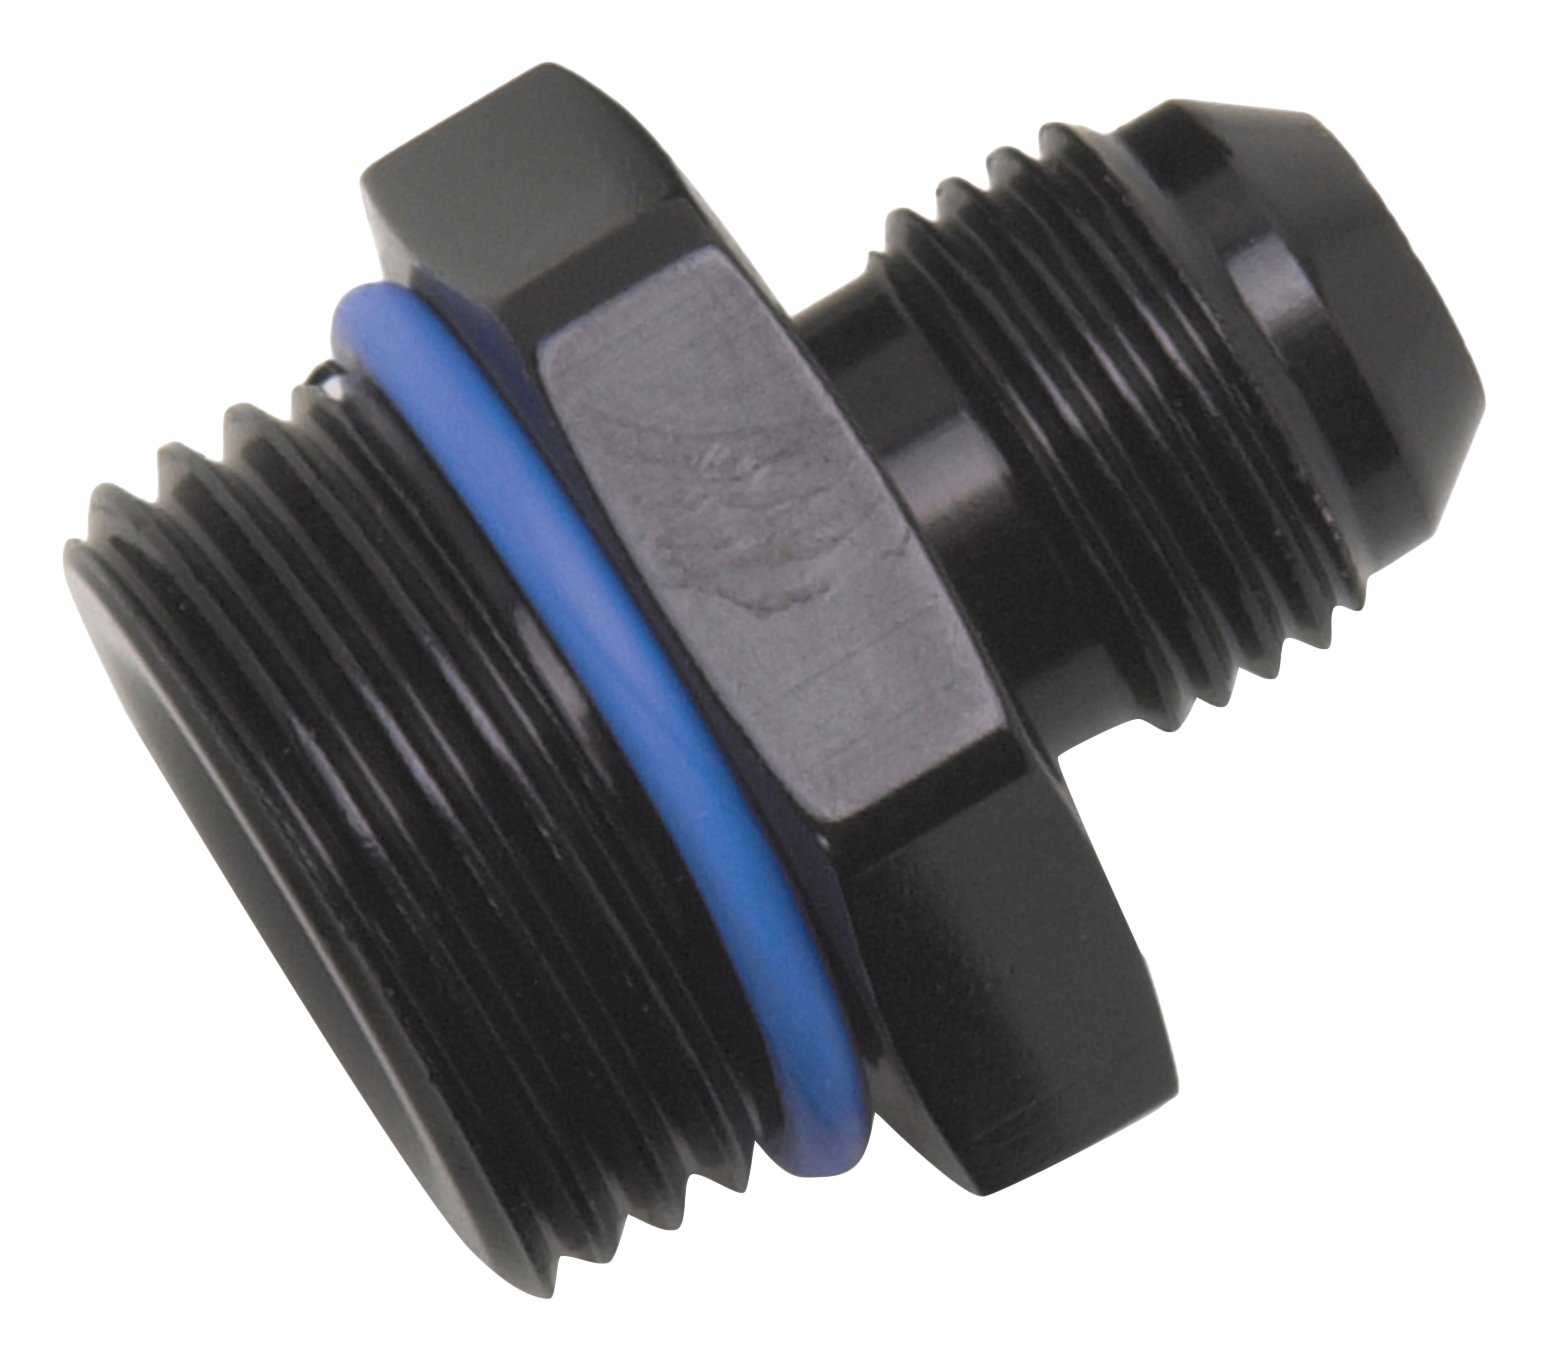 Russell 670940 Adapter Fitting